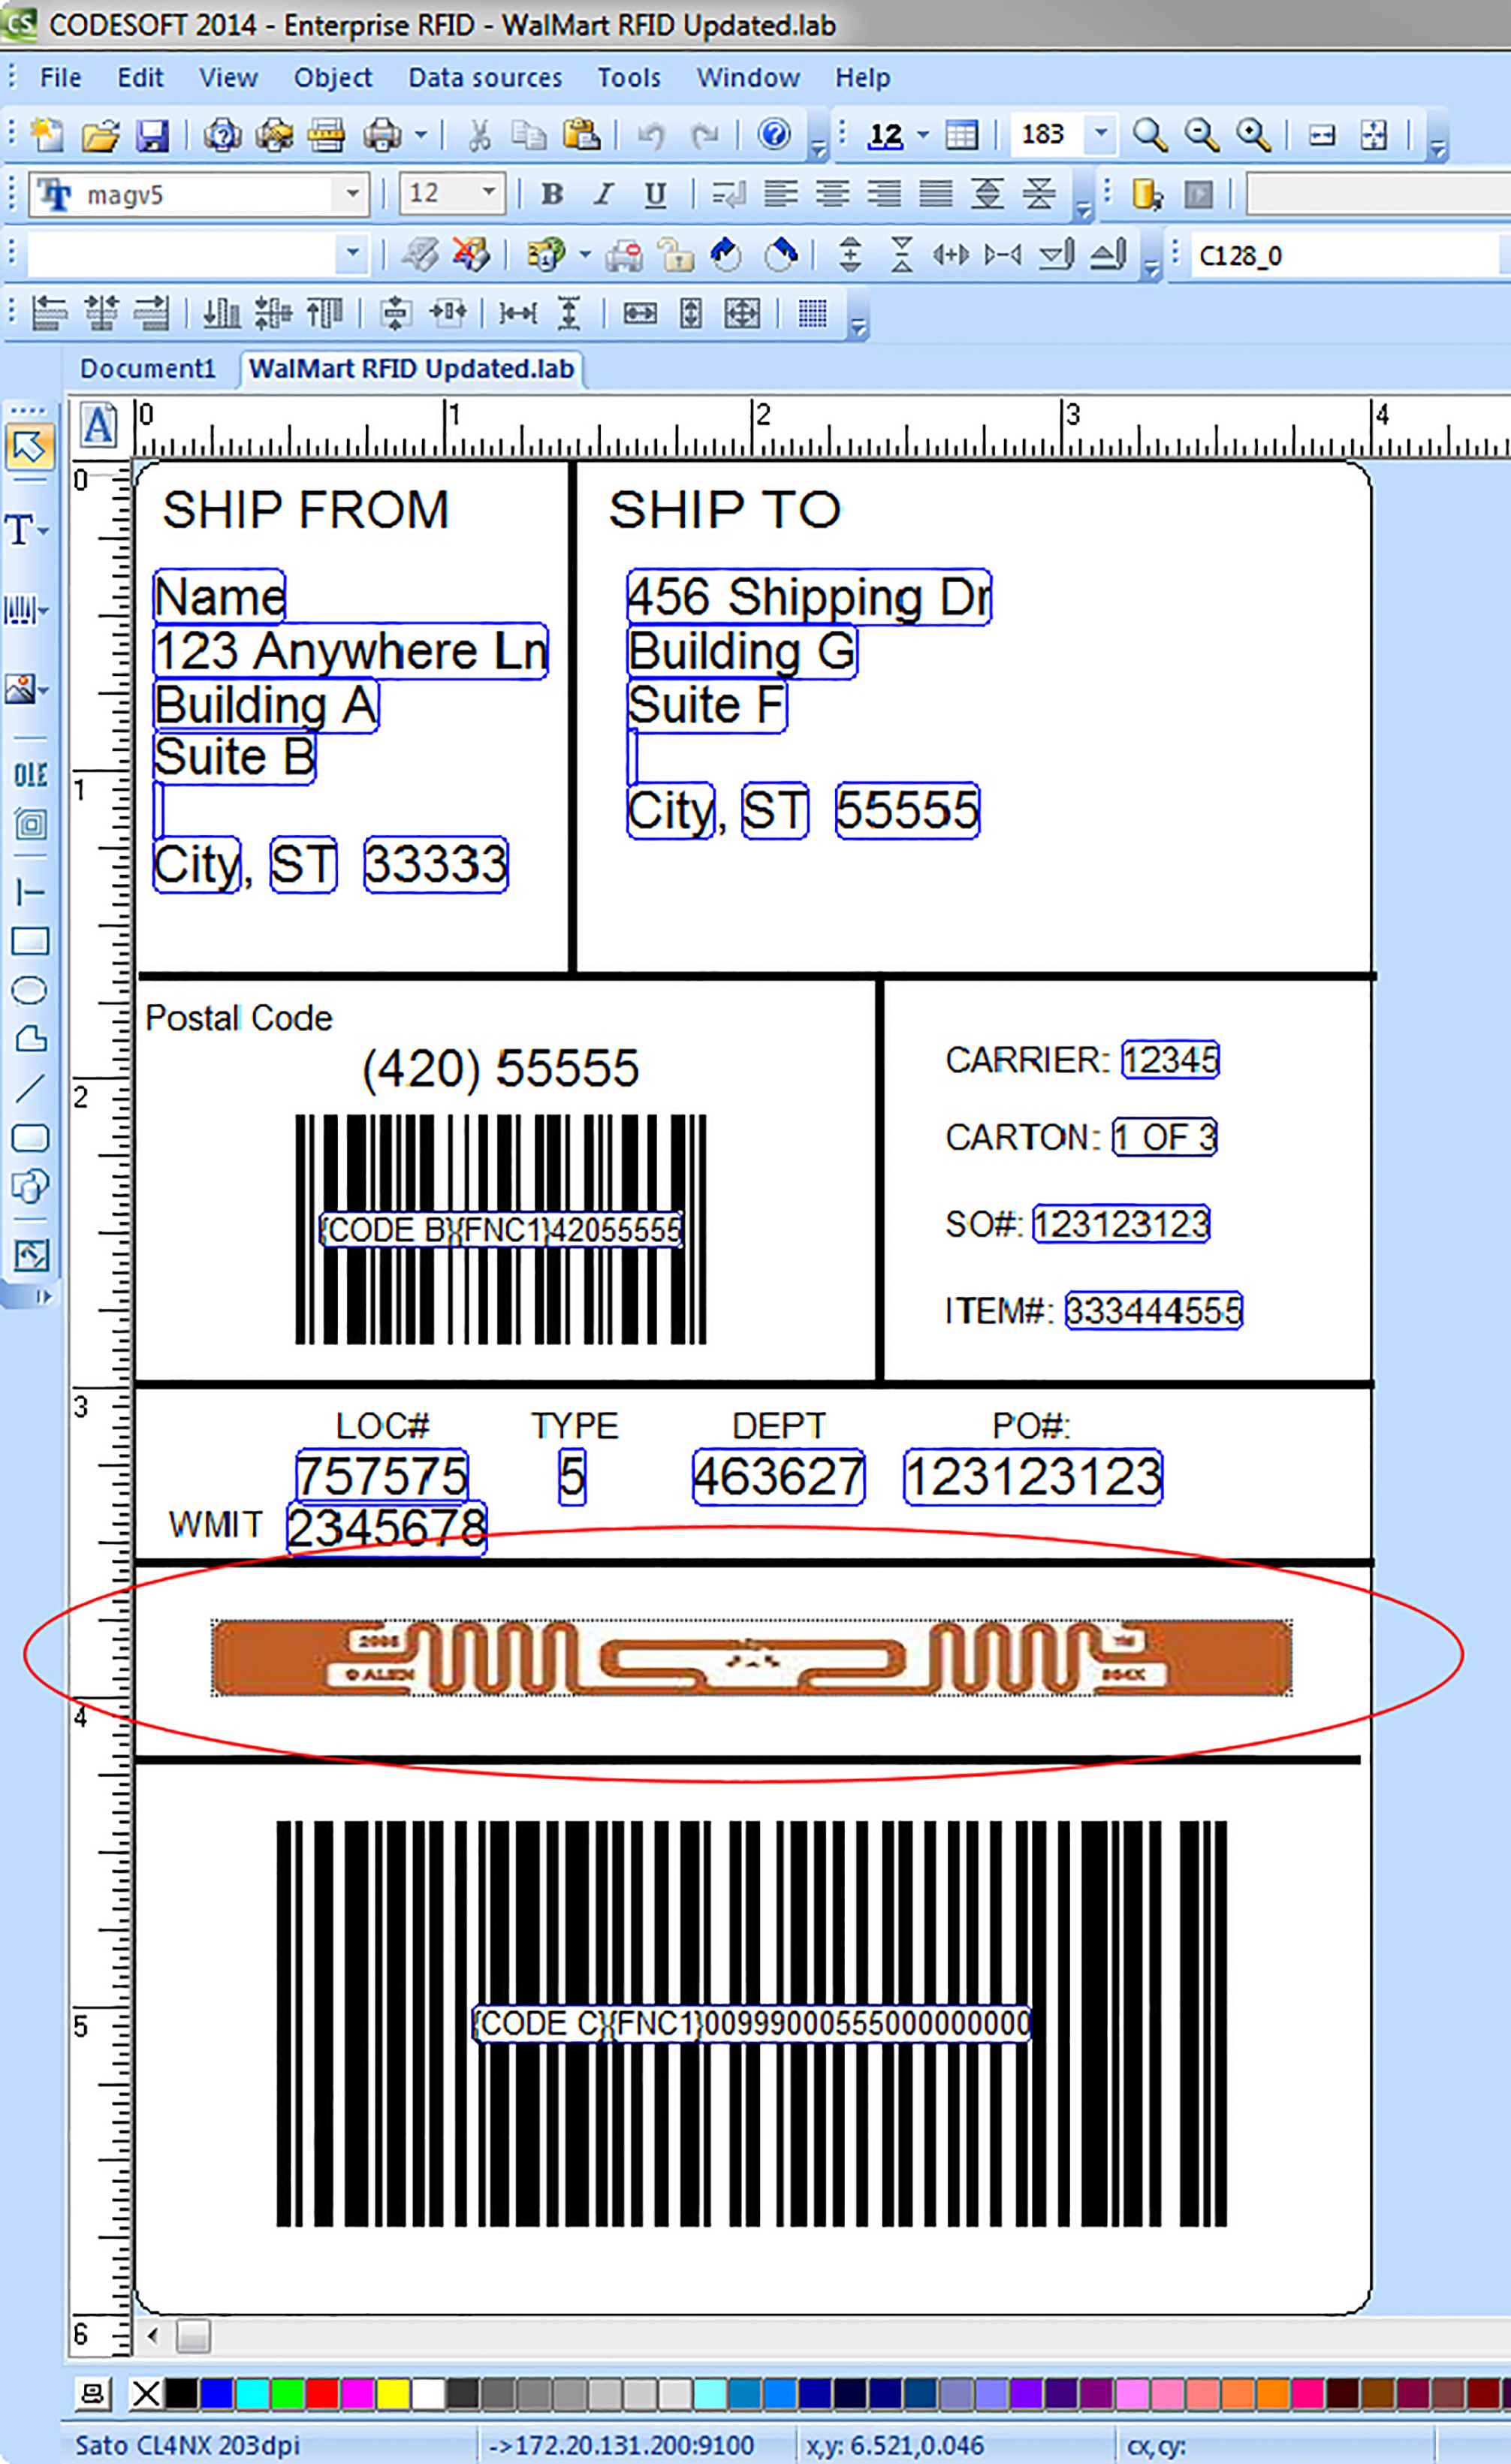 RFID label in CODESOFT Enterprise RFID label software